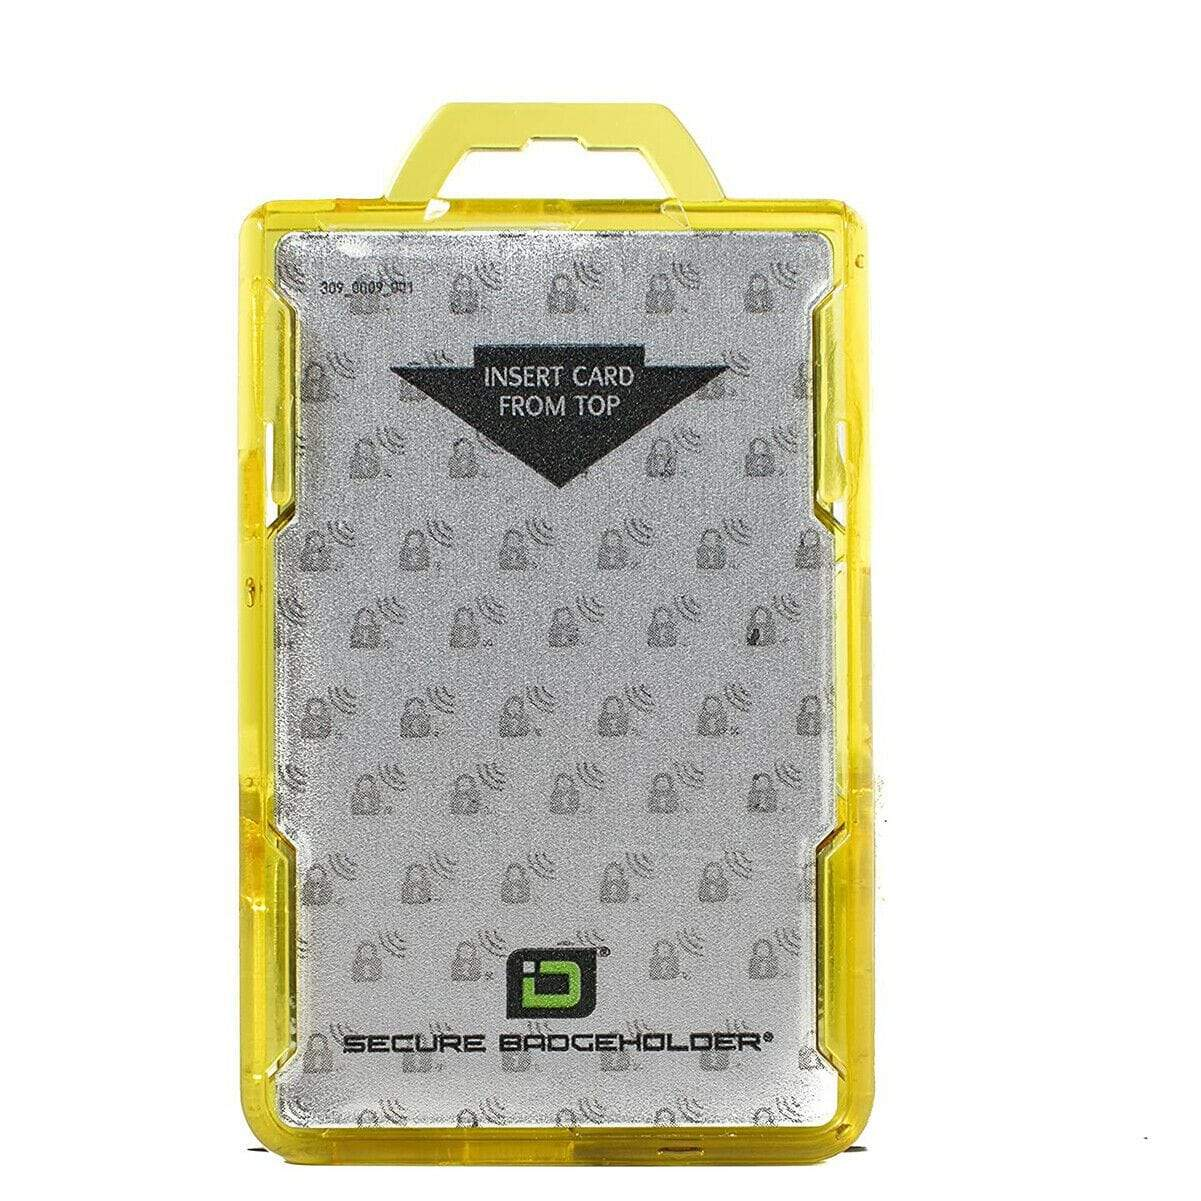 Identity Stronghold RFID Blocking Secure ID Badgeholder DuoLite (IDSH2004-001B)